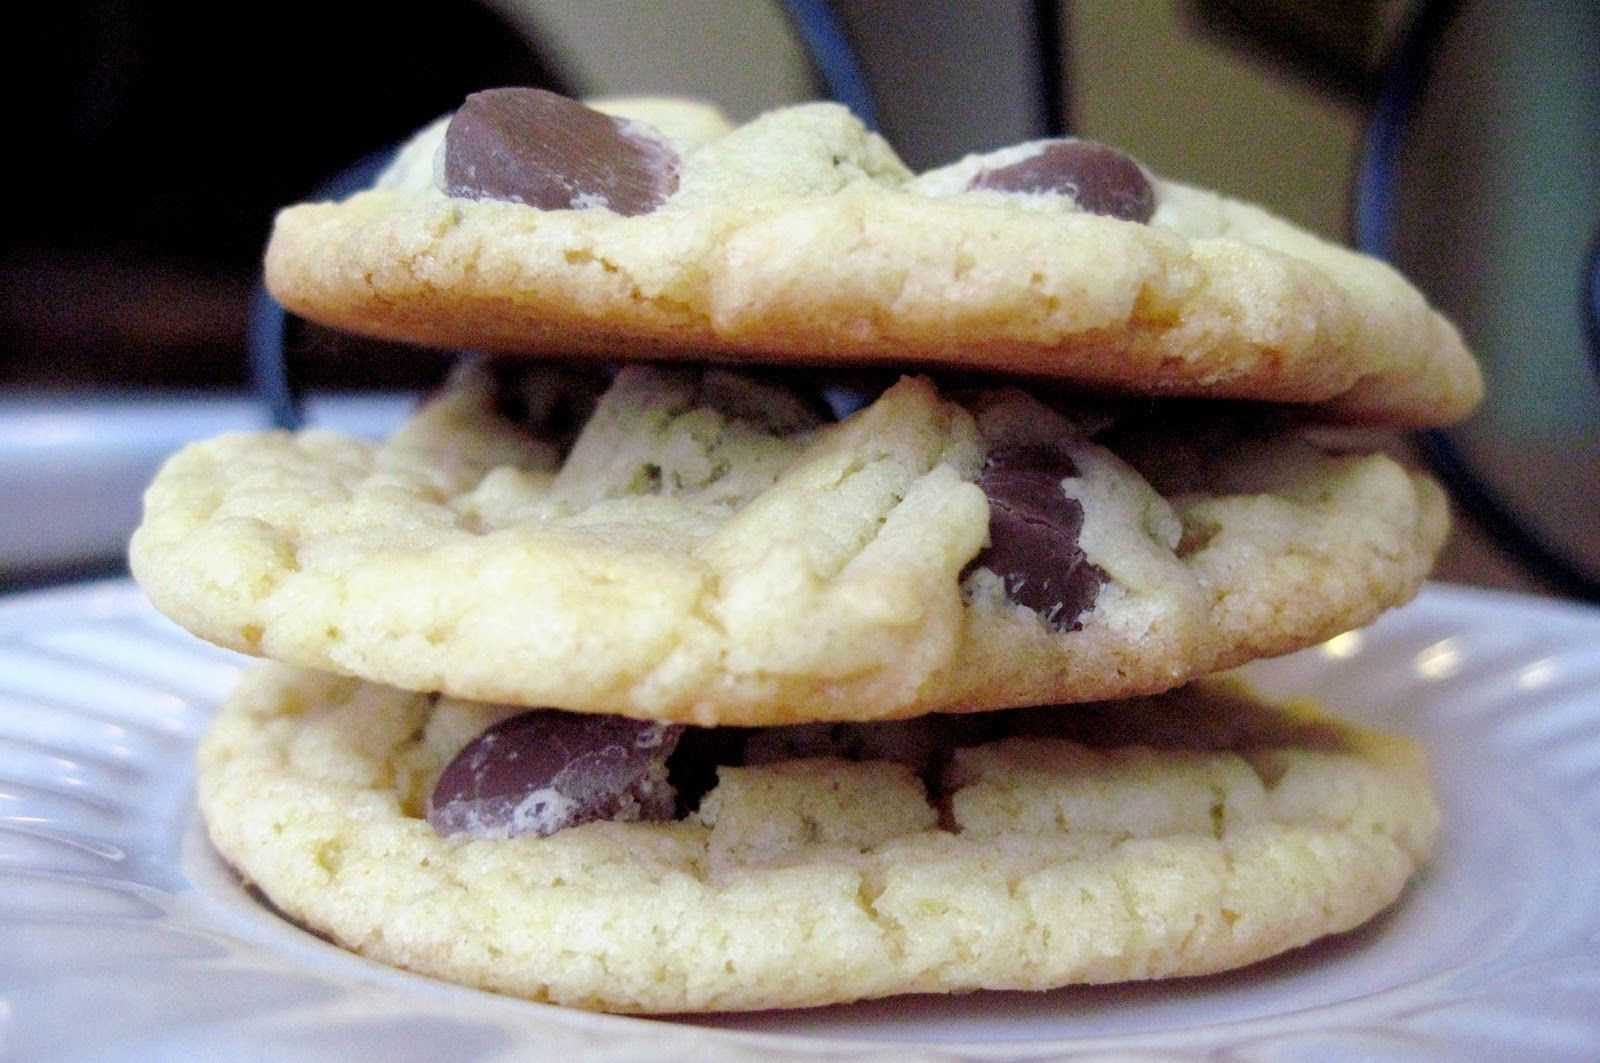 Cake Mix Cookies 1 Box White Cake Mix 1 Egg 1 2 Cup Brown Sugar 3 4 Cup Canola Oil 3 Tablespoons Milk 1 1 Cake Mix Cookies Chocolate Chip Cake Cake Mix